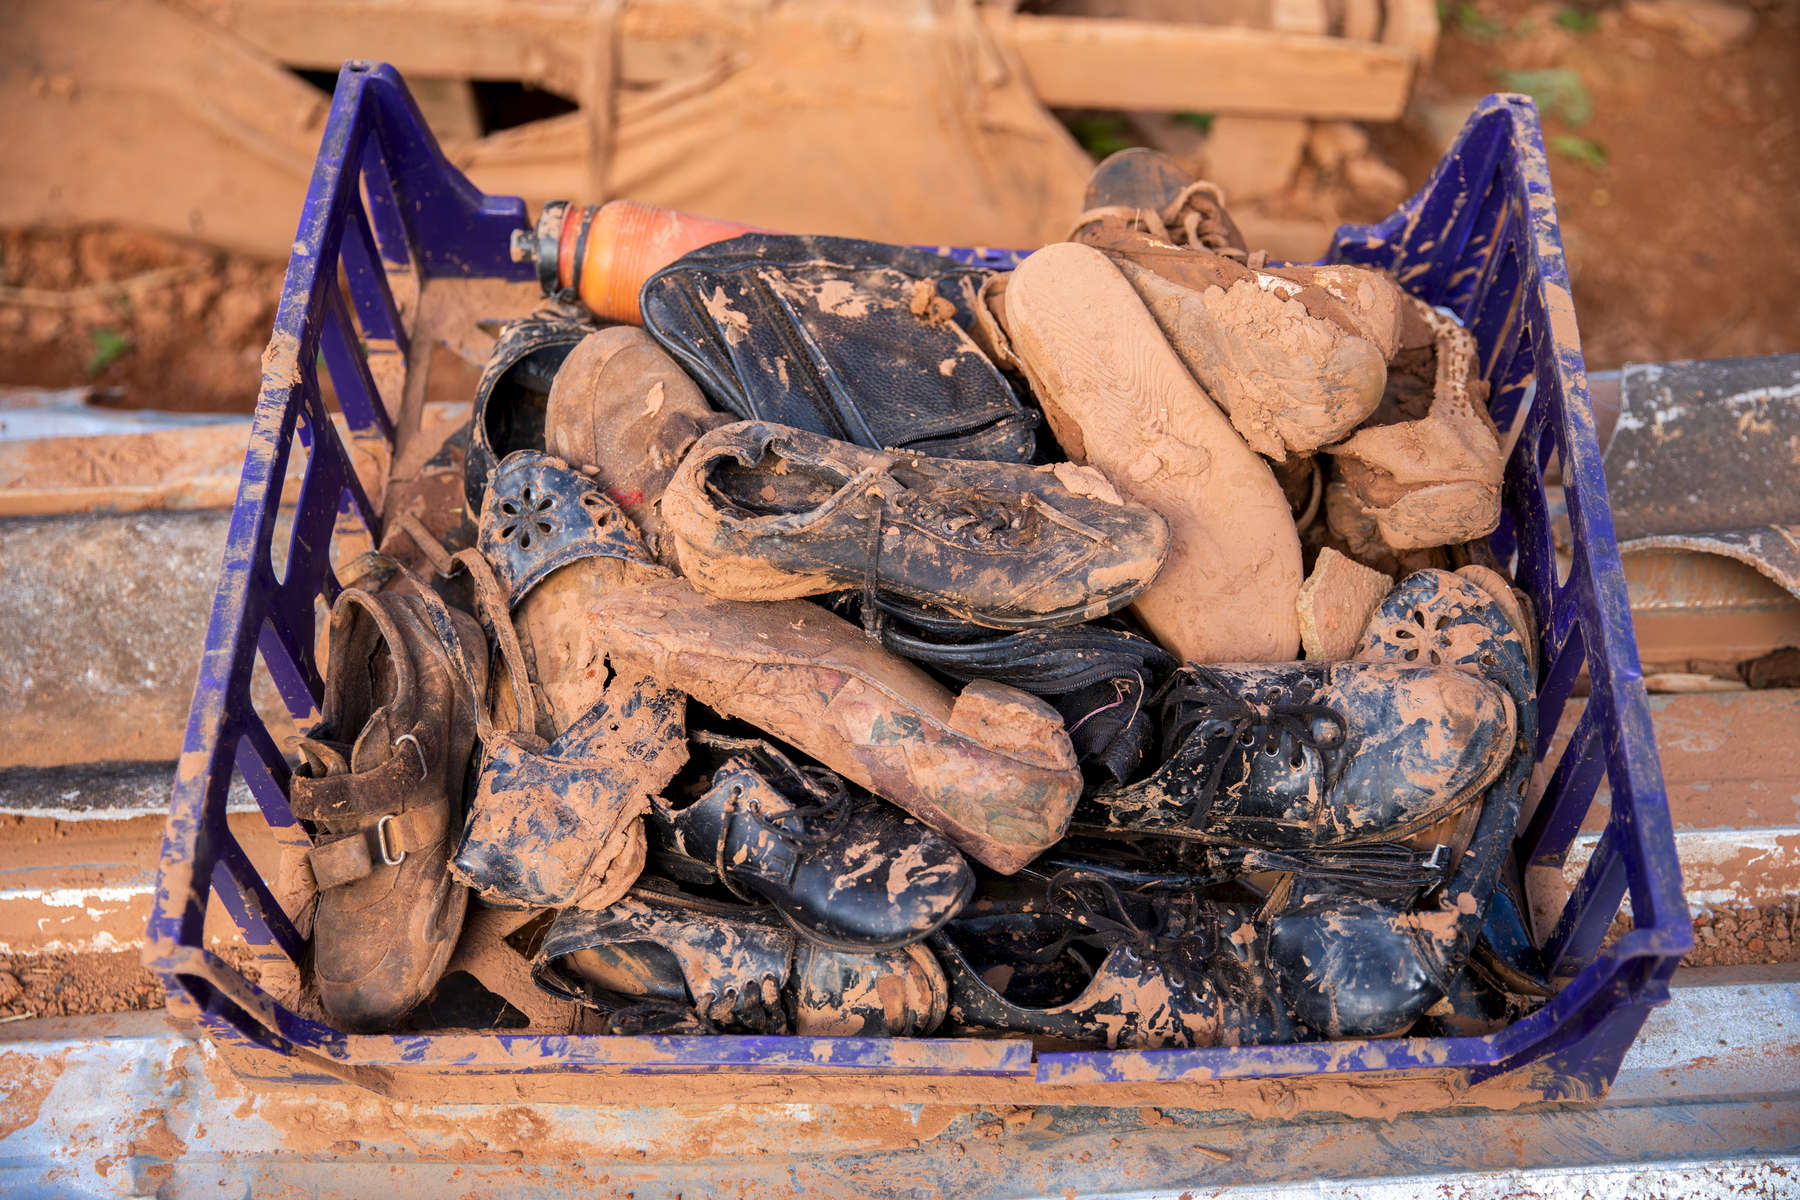 A box of muddy shoes that Anthony Machingauta, 52, recovered from his home.